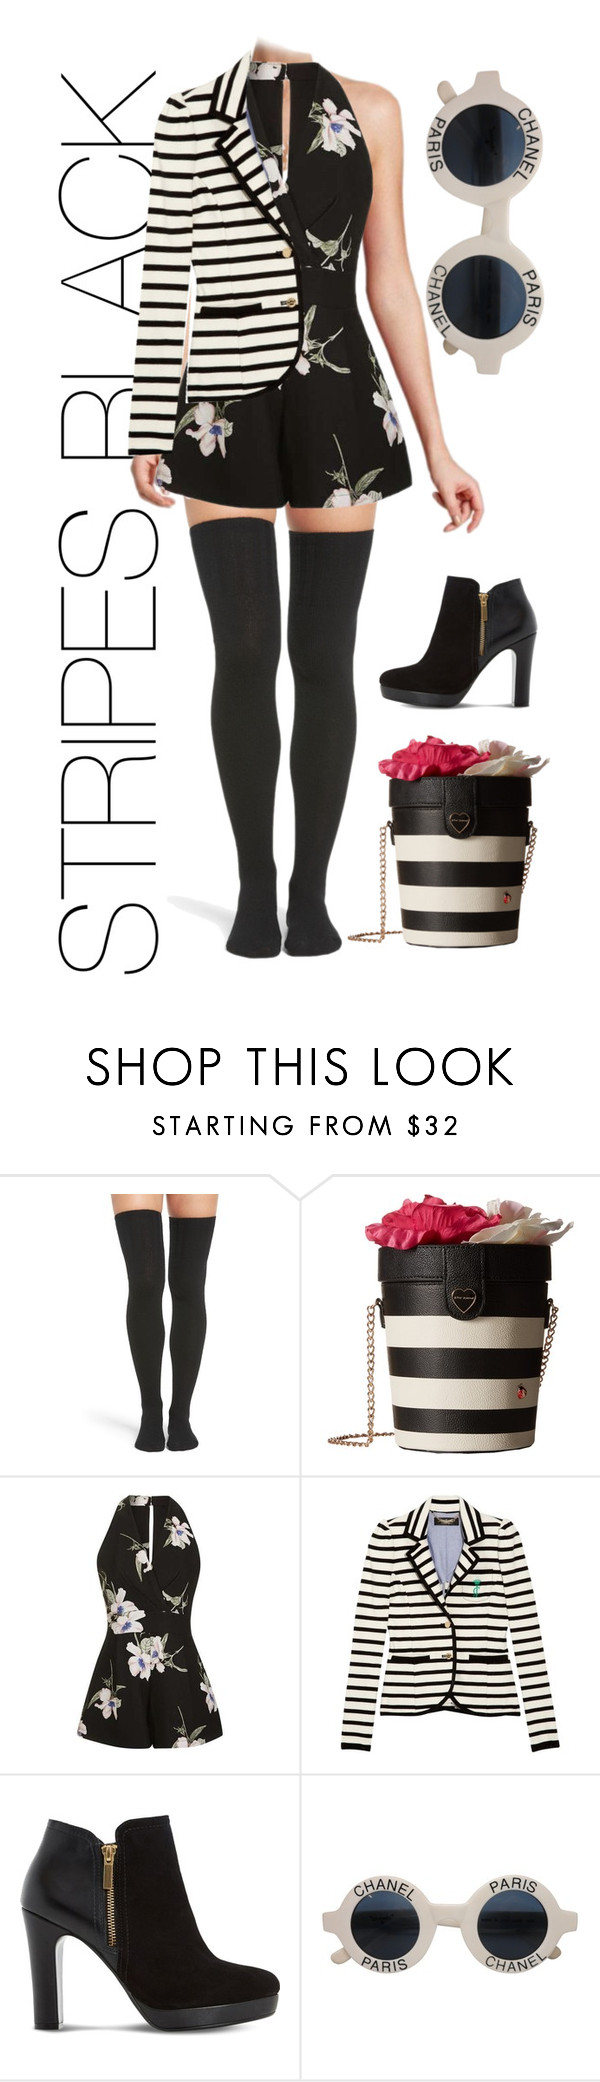 """""""Stripes Black set"""" by mylene-echelon ❤ liked on Polyvore featuring Peony & Moss, Betsey Johnson, Topshop, Juicy Couture, Dune and Chanel"""